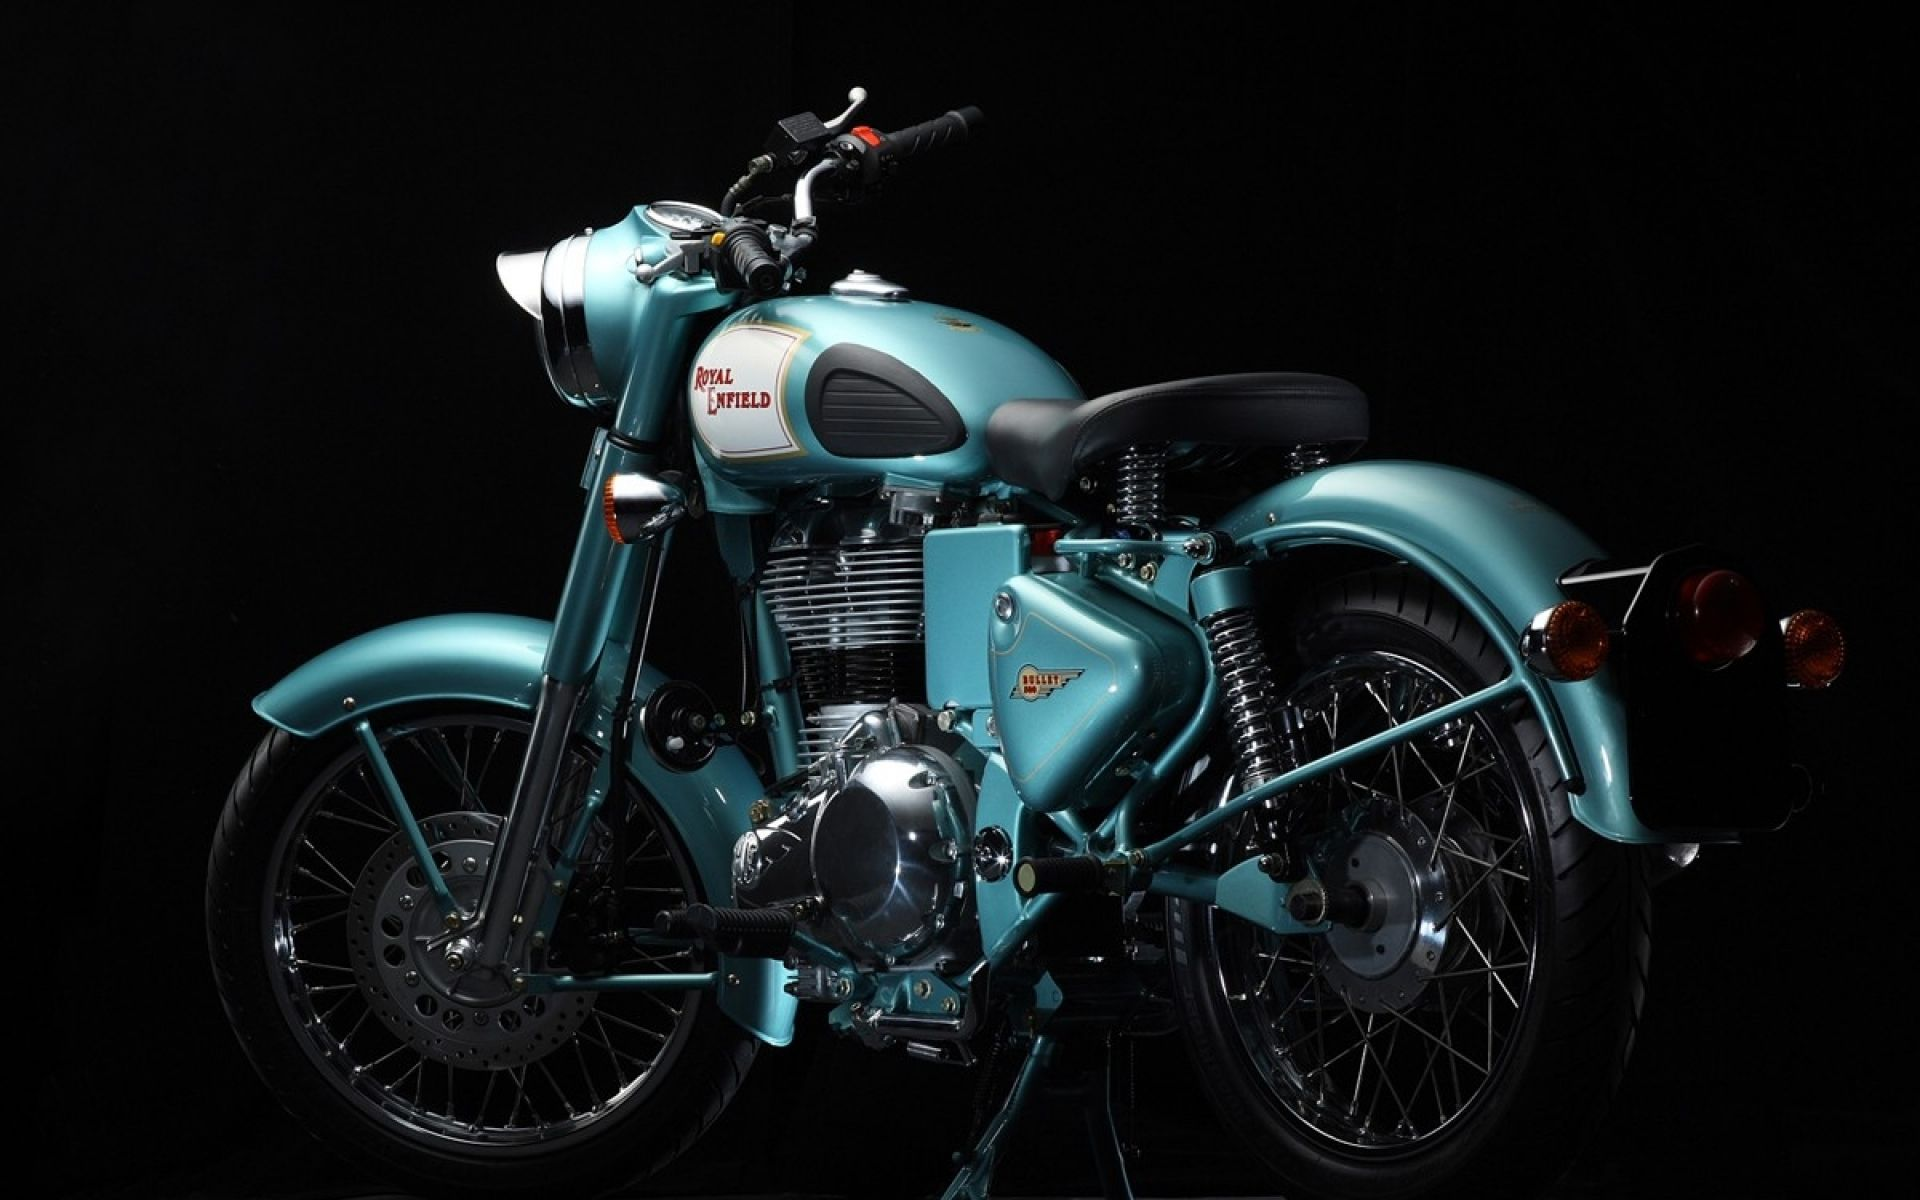 Royal Enfield Bullet 500 Images 1 Hd Wallpapers Buzz Epic Car